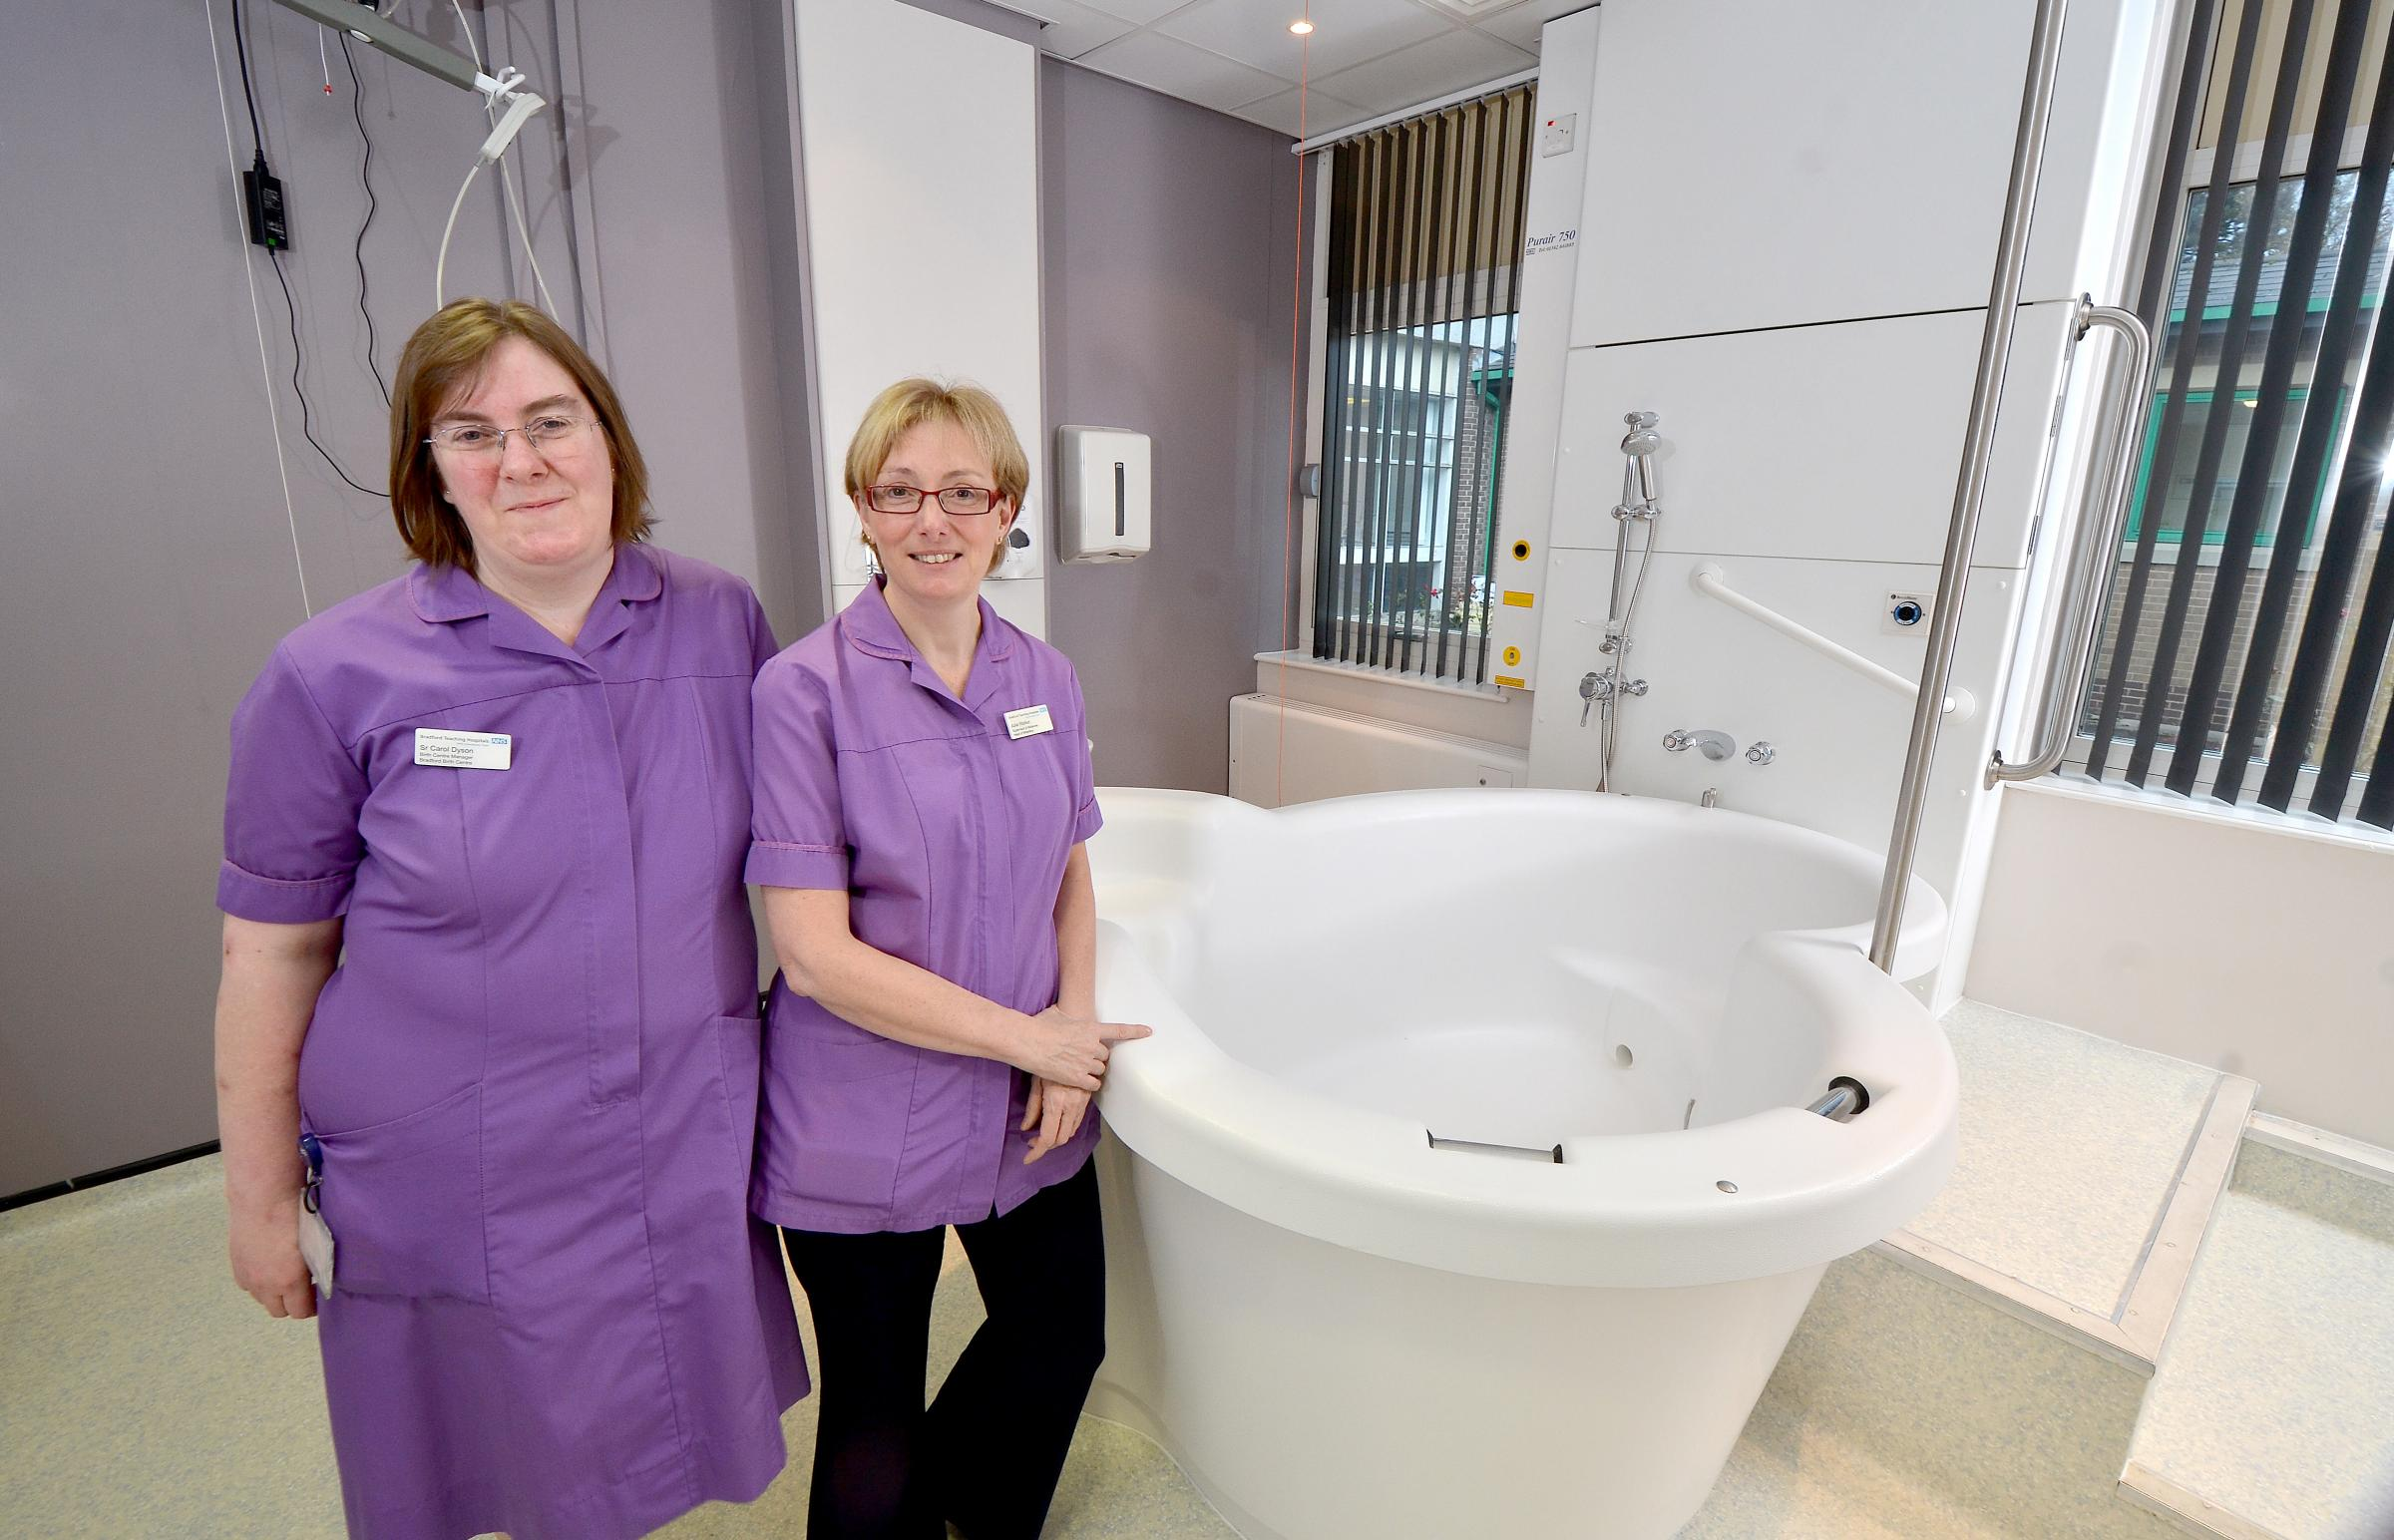 Birth centre manager Carol Dyson (left) and head of midwifery Julie Walker at Bradford Royal infirmary's midwife-led maternity unit